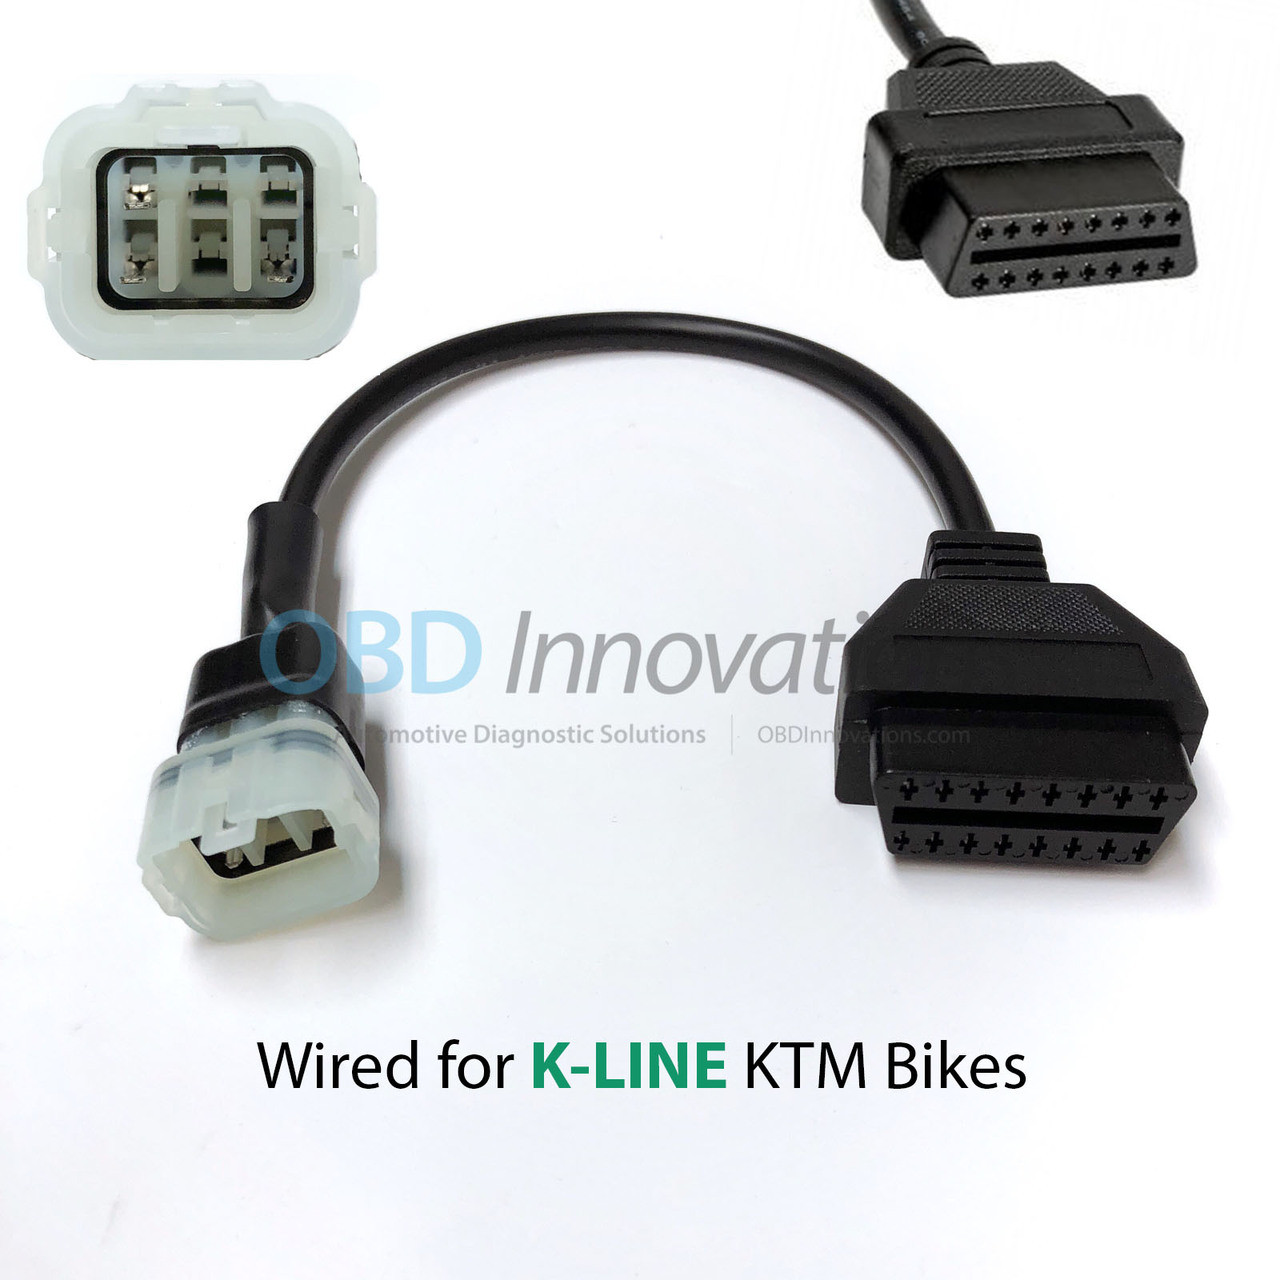 6 Pin to OBD2 Adapter Cable for KTM Motorcycles with Kehin Connector Obd Pin To Usb Cable Wiring Diagram on